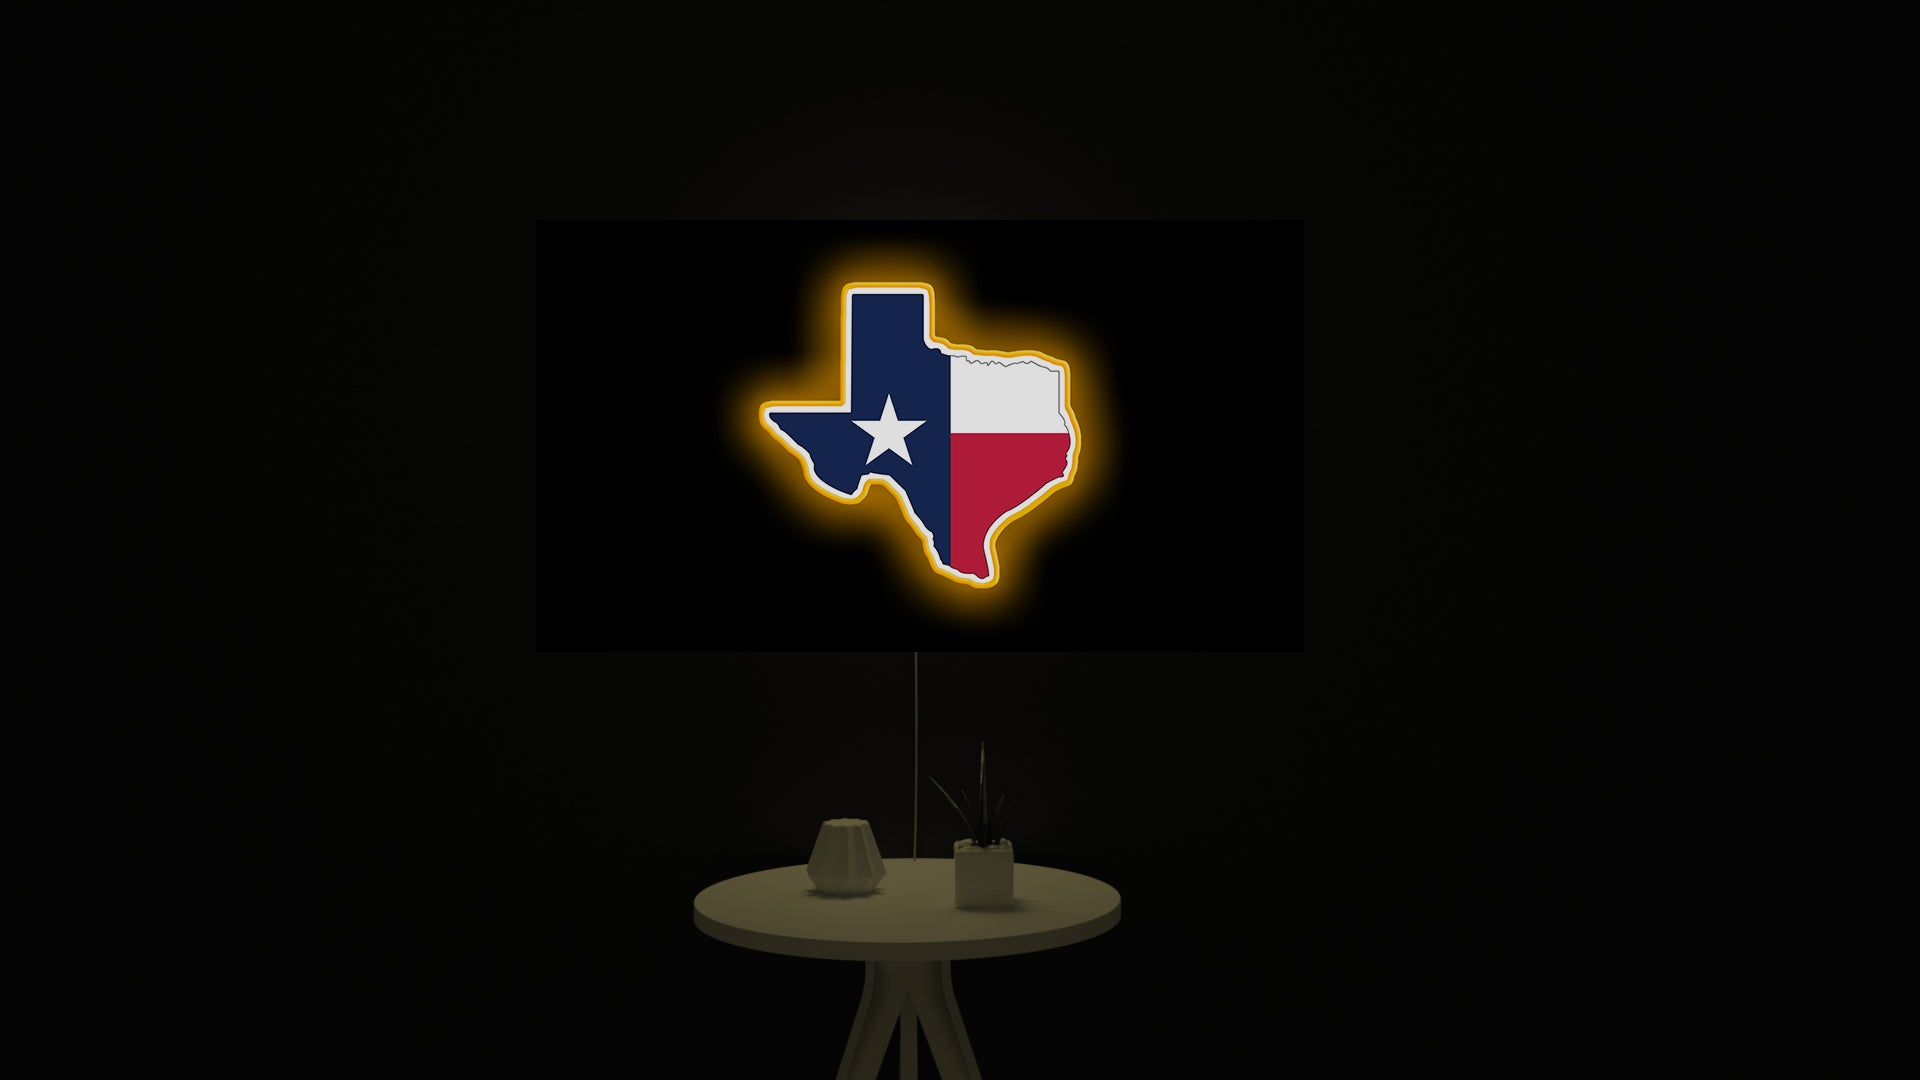 Texas State Outline with Flag led light sign